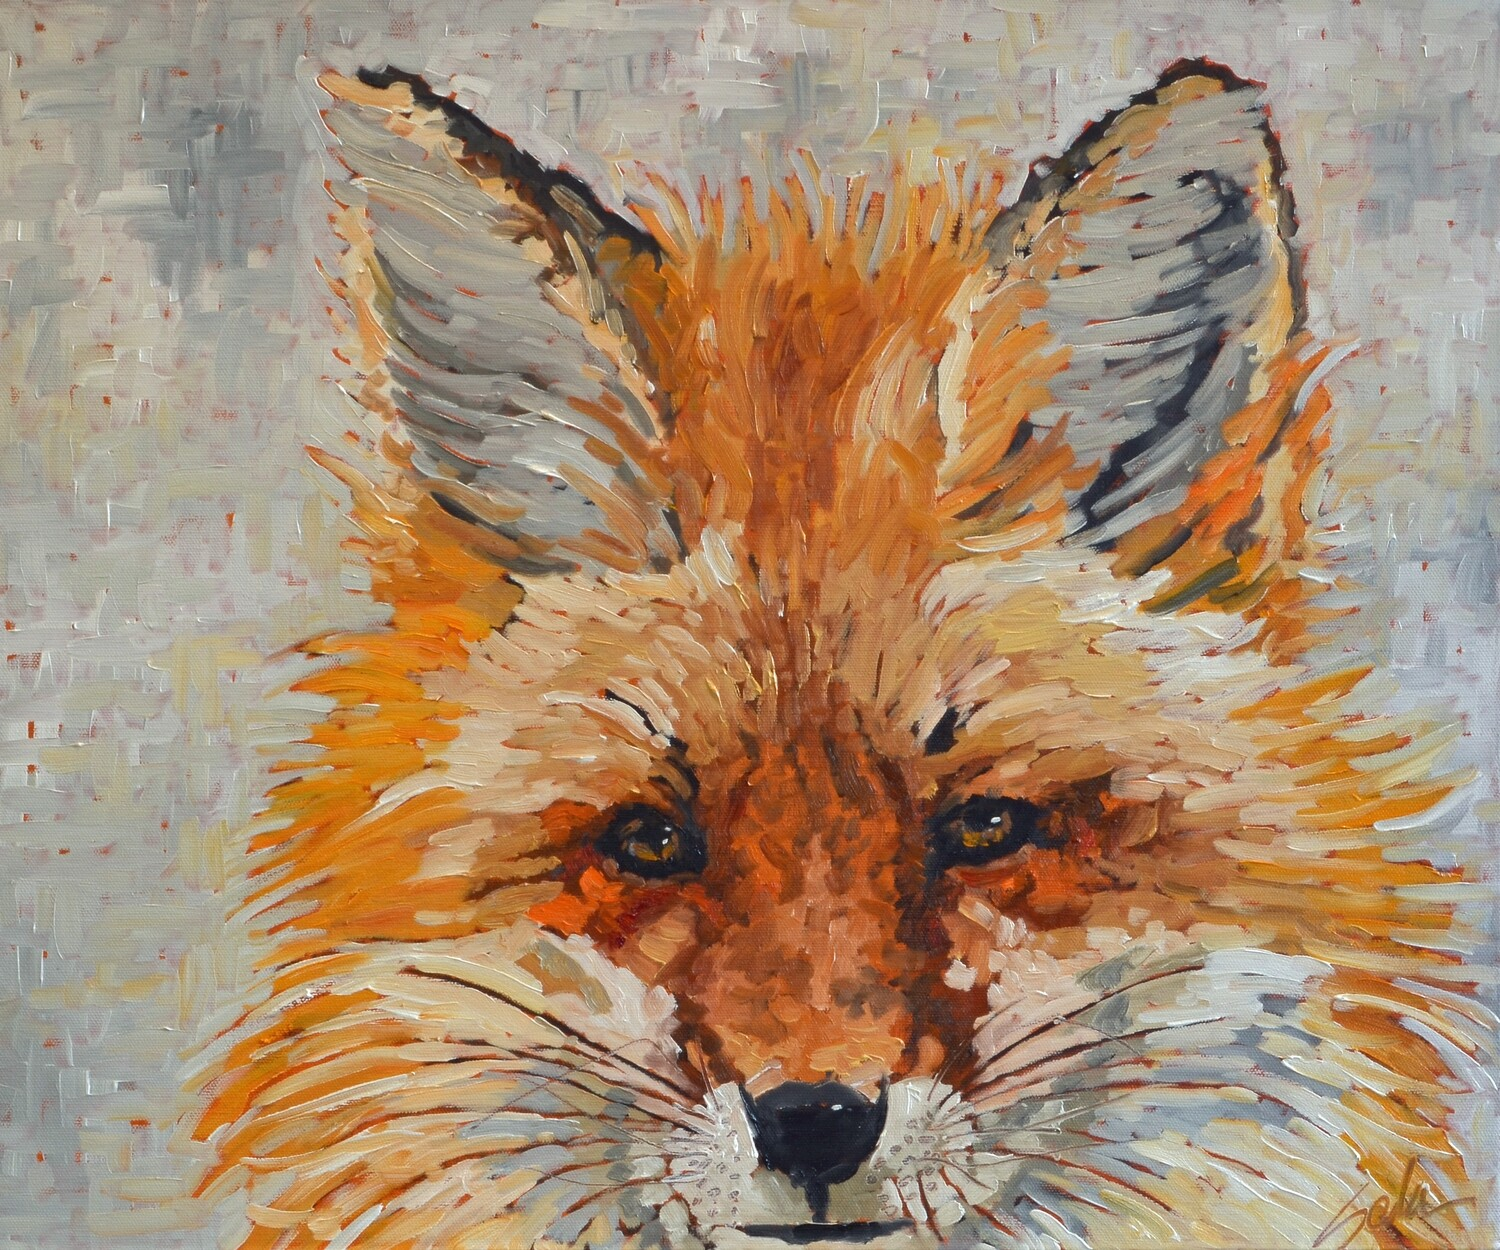 Red Fox, oil on canvas, 24x20